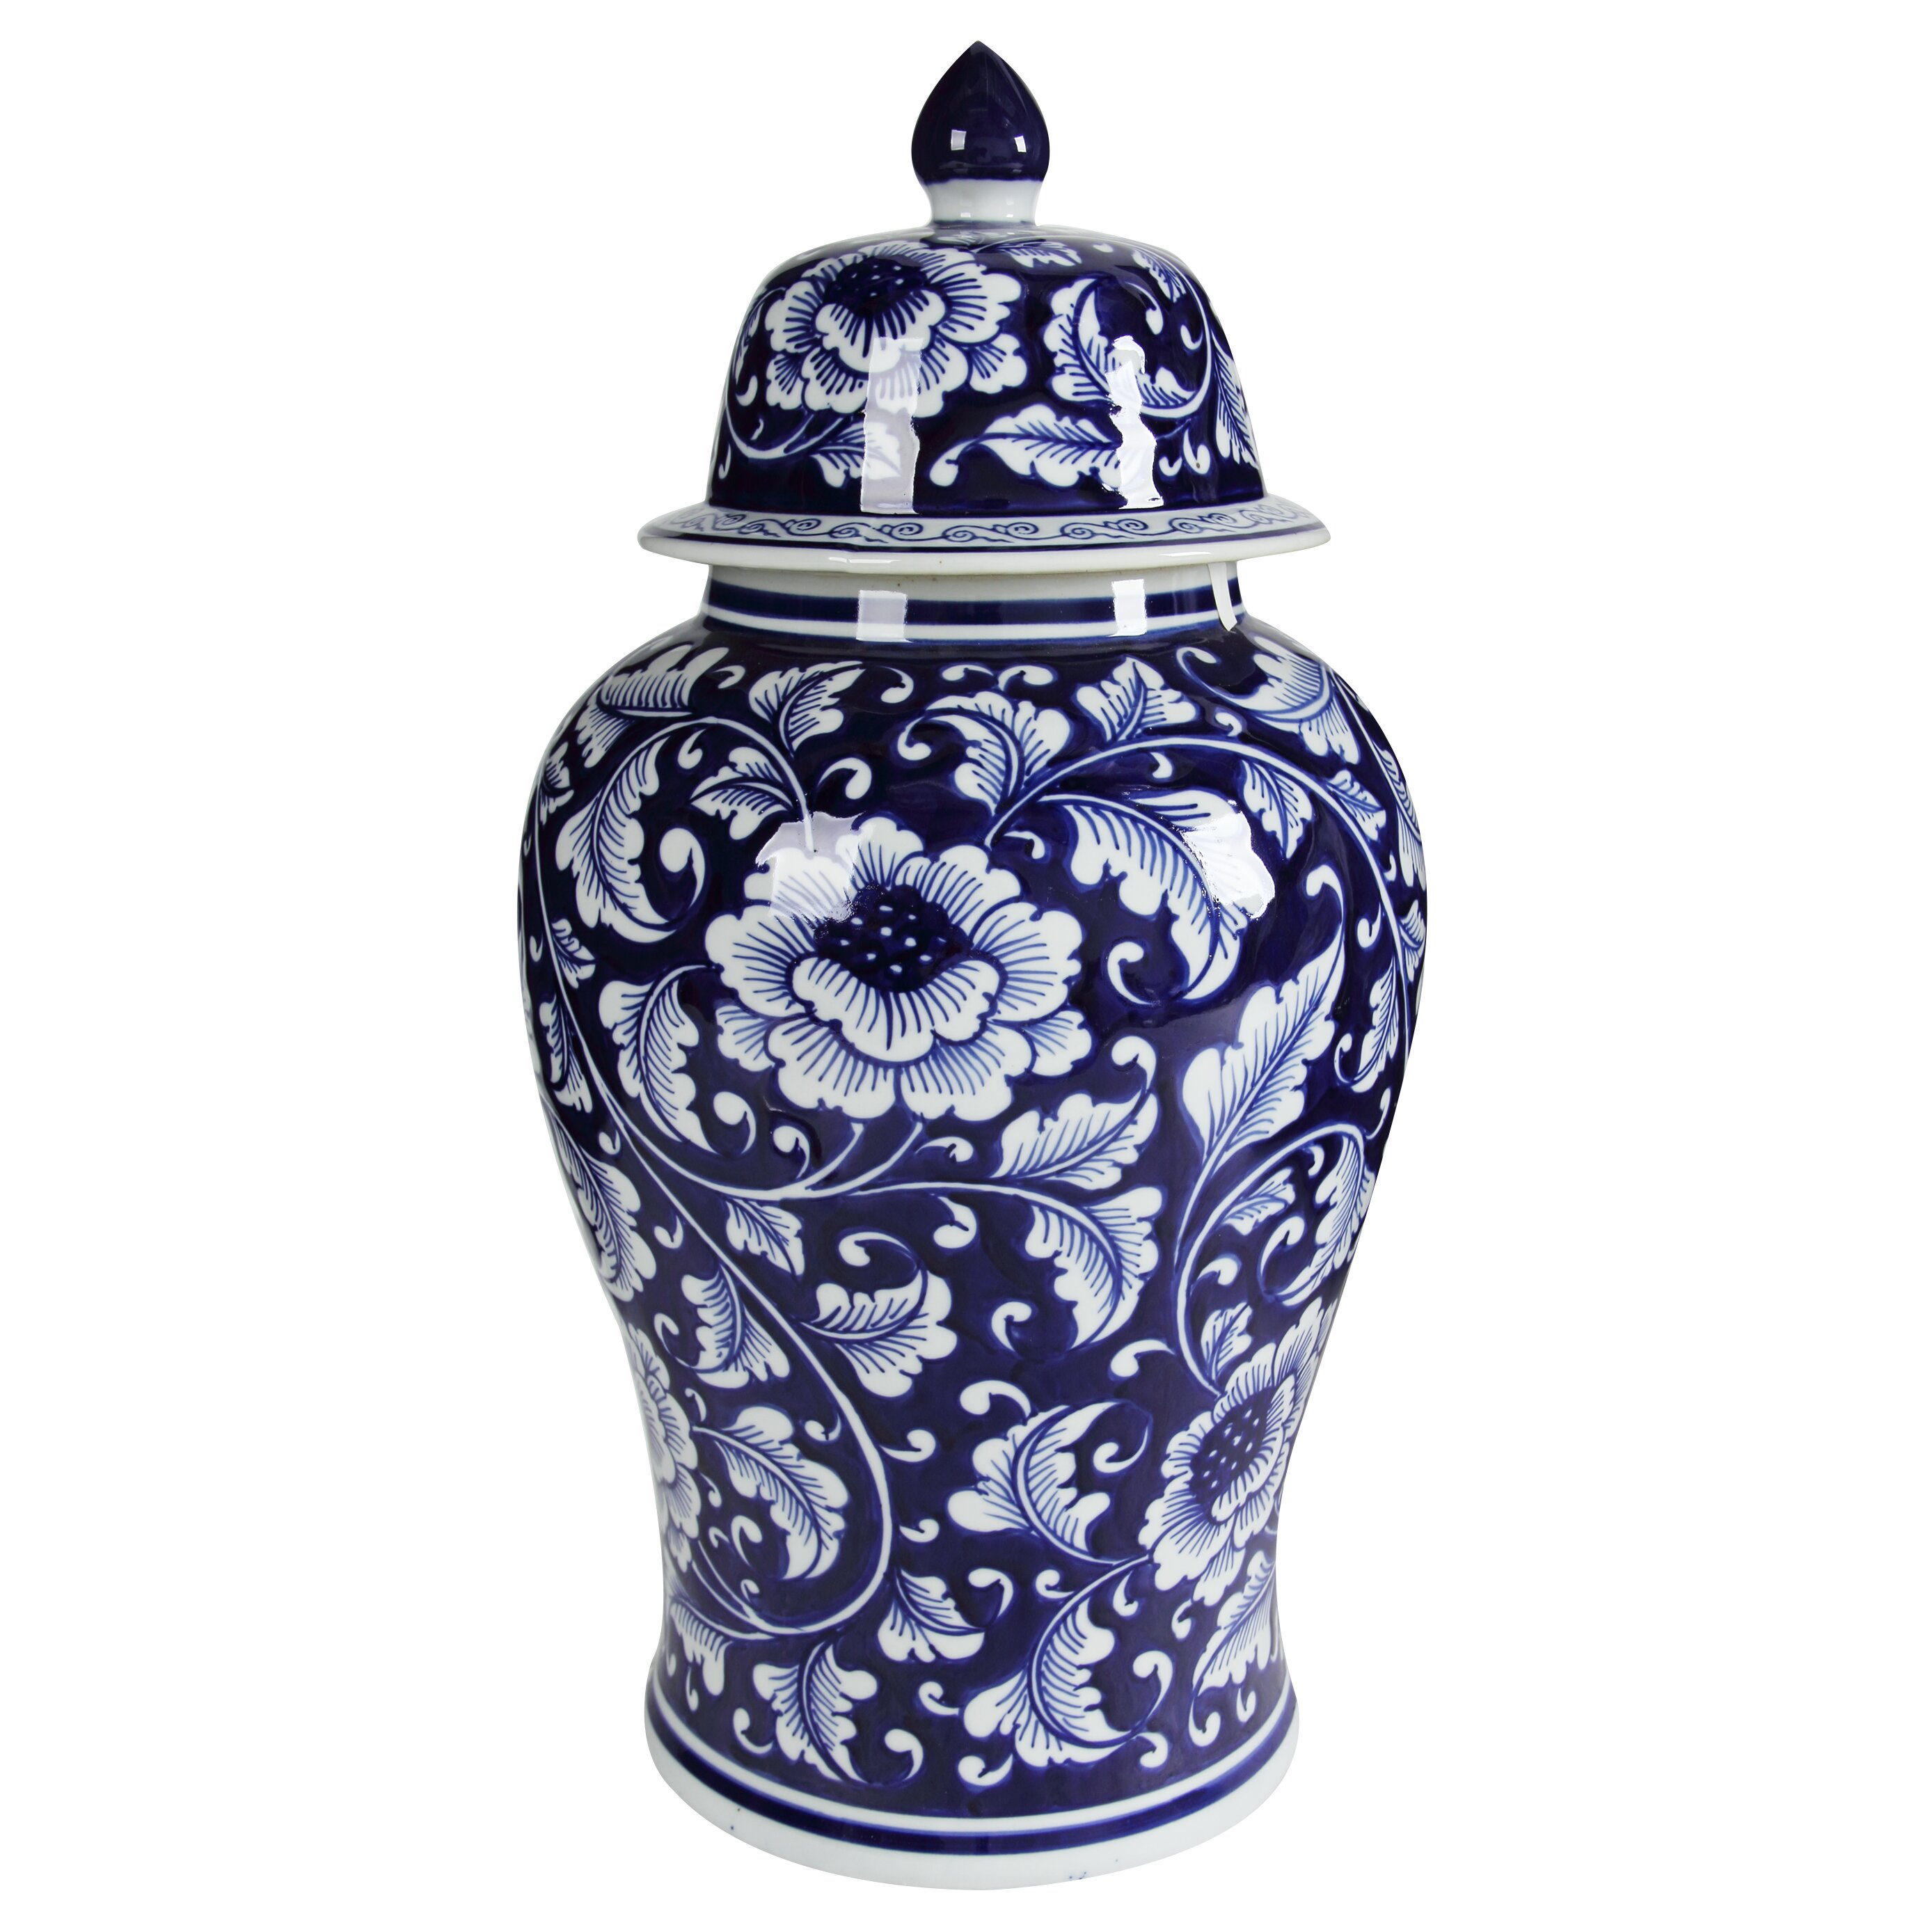 A B Home Decorative Urn Reviews Wayfair